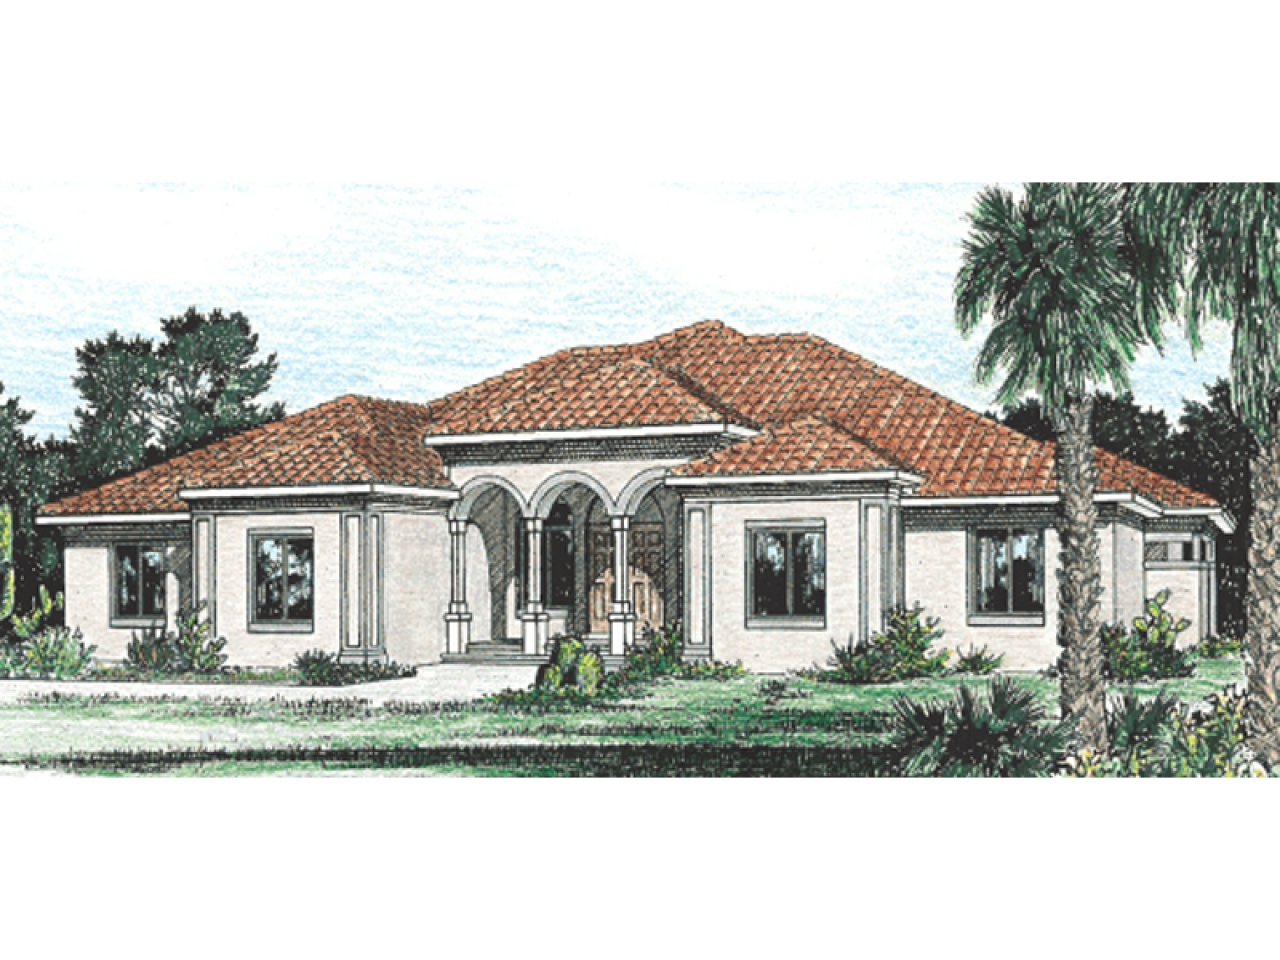 Stucco house plans for homes stucco 2 story house plans for Stucco home plans